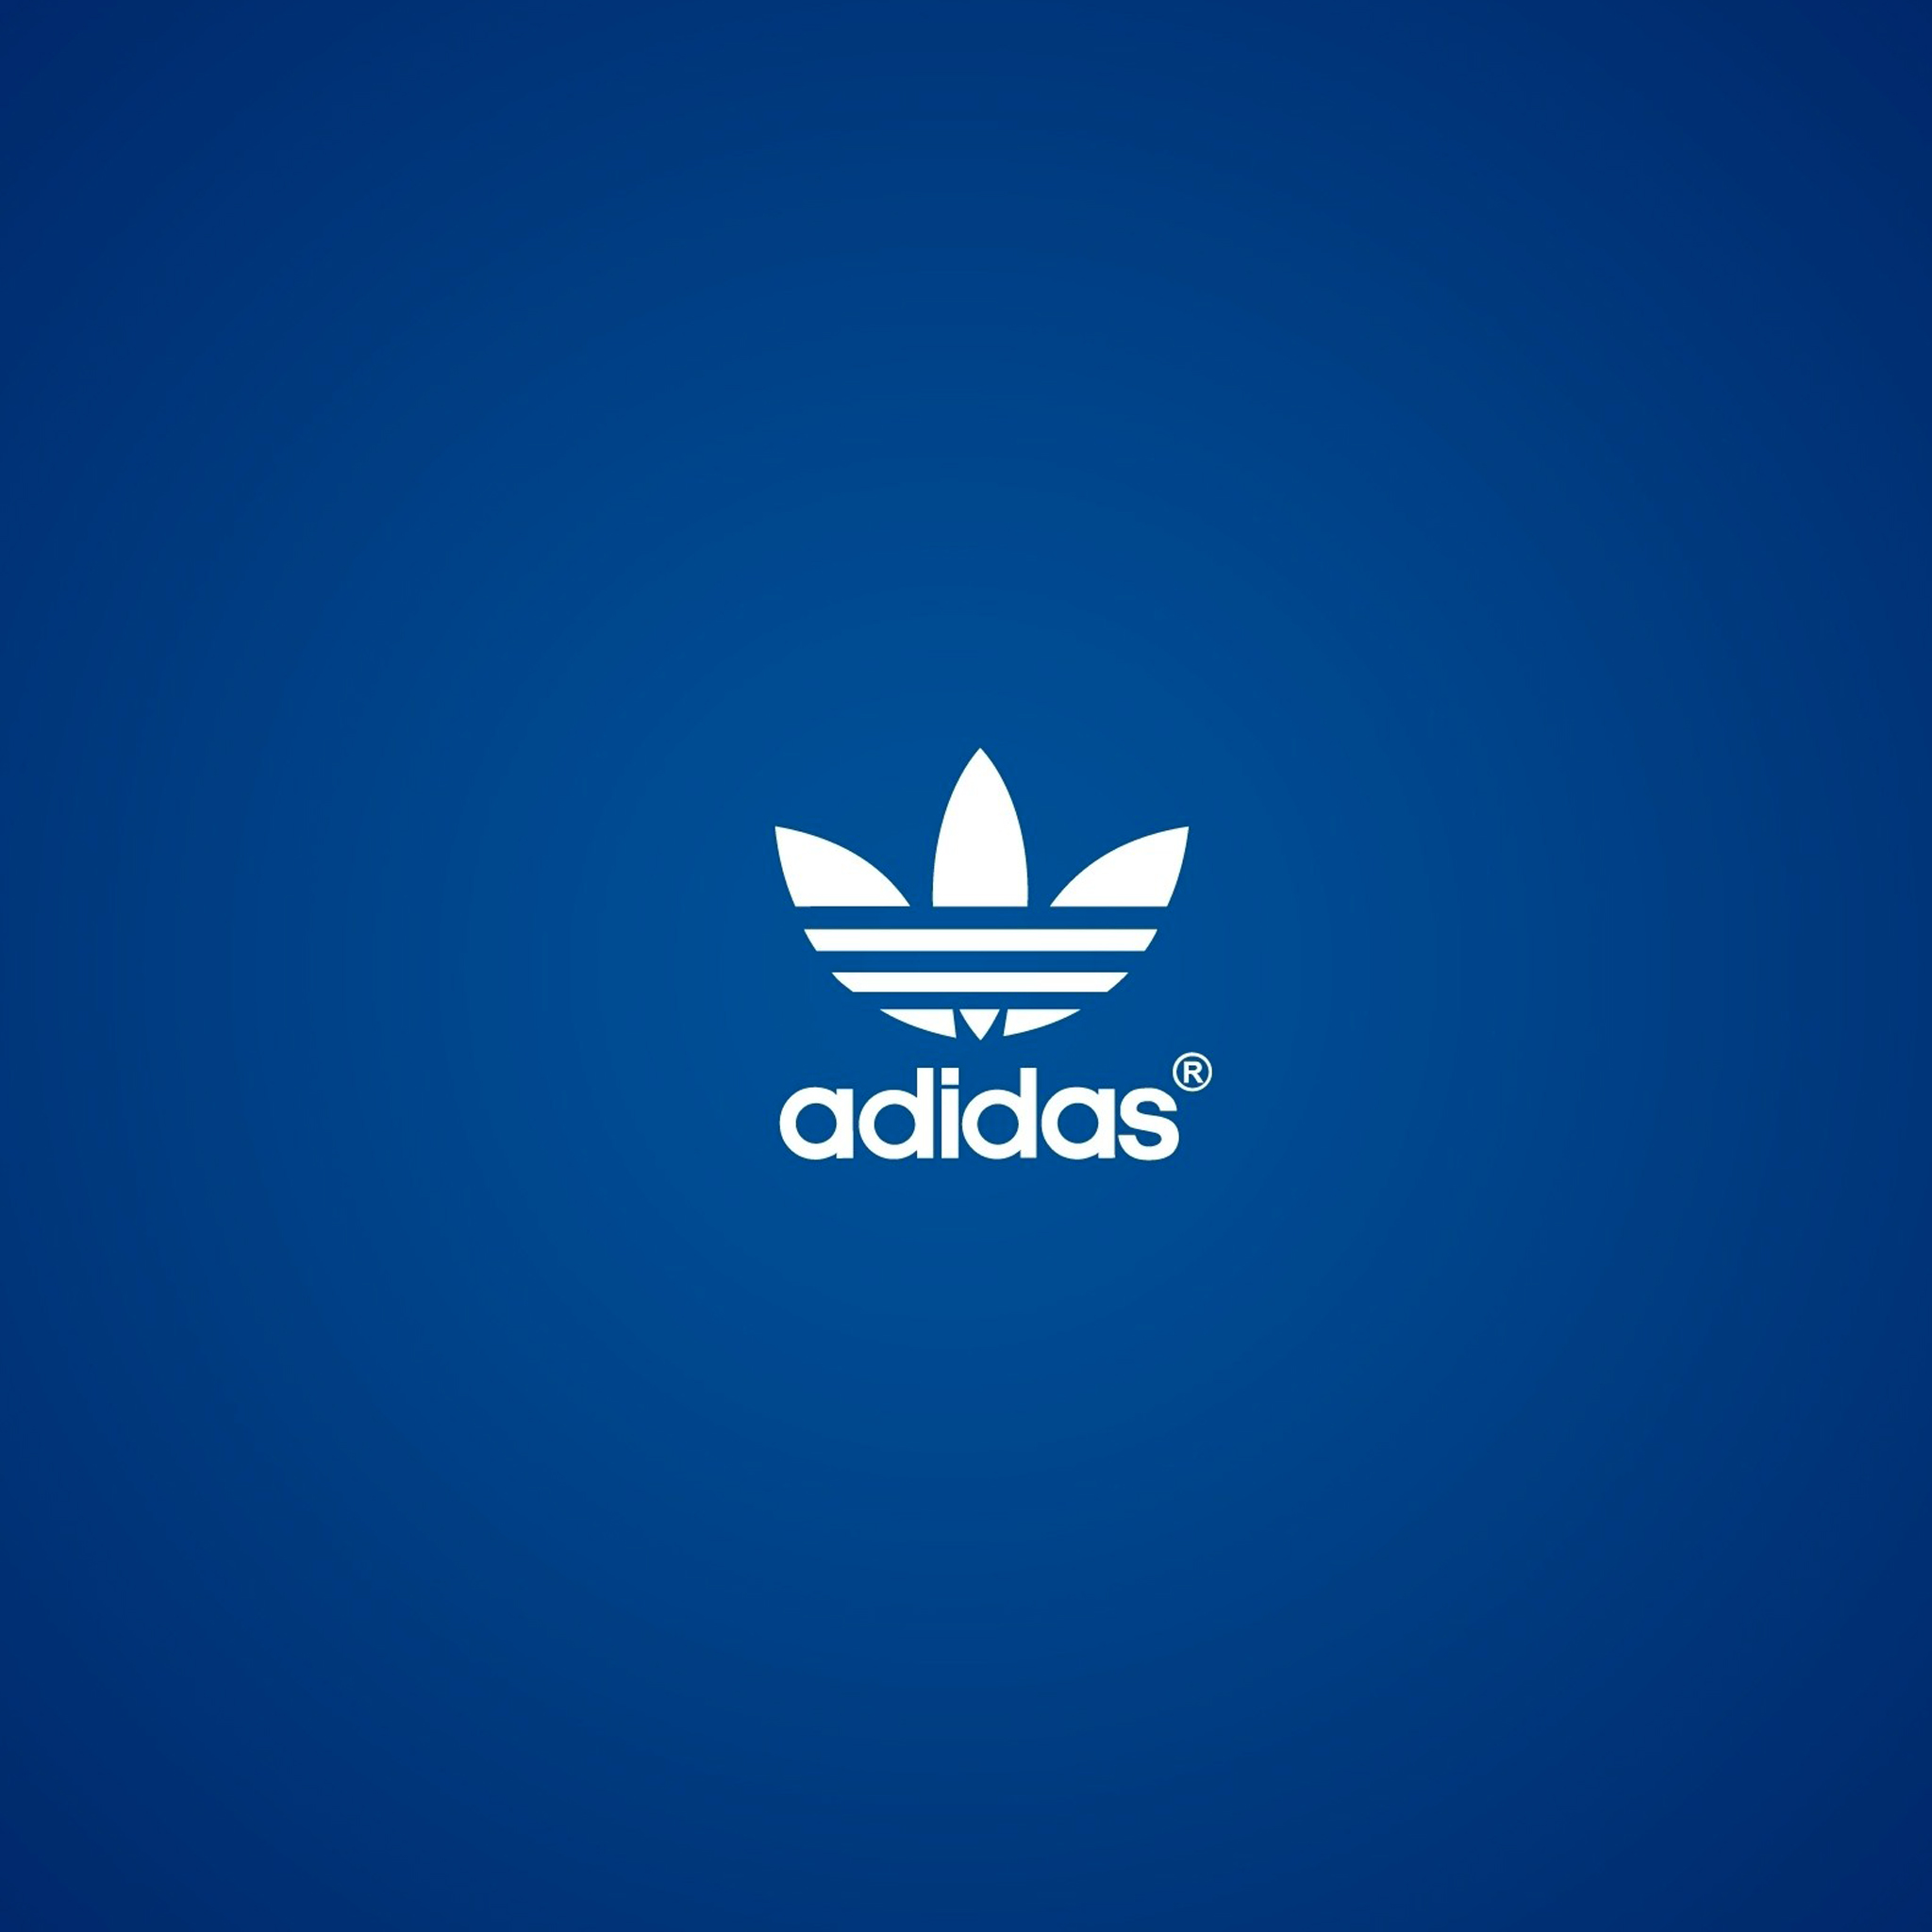 Adidas Blue 3Wallpapers iPad Retina Adidas Blue   iPad Retina